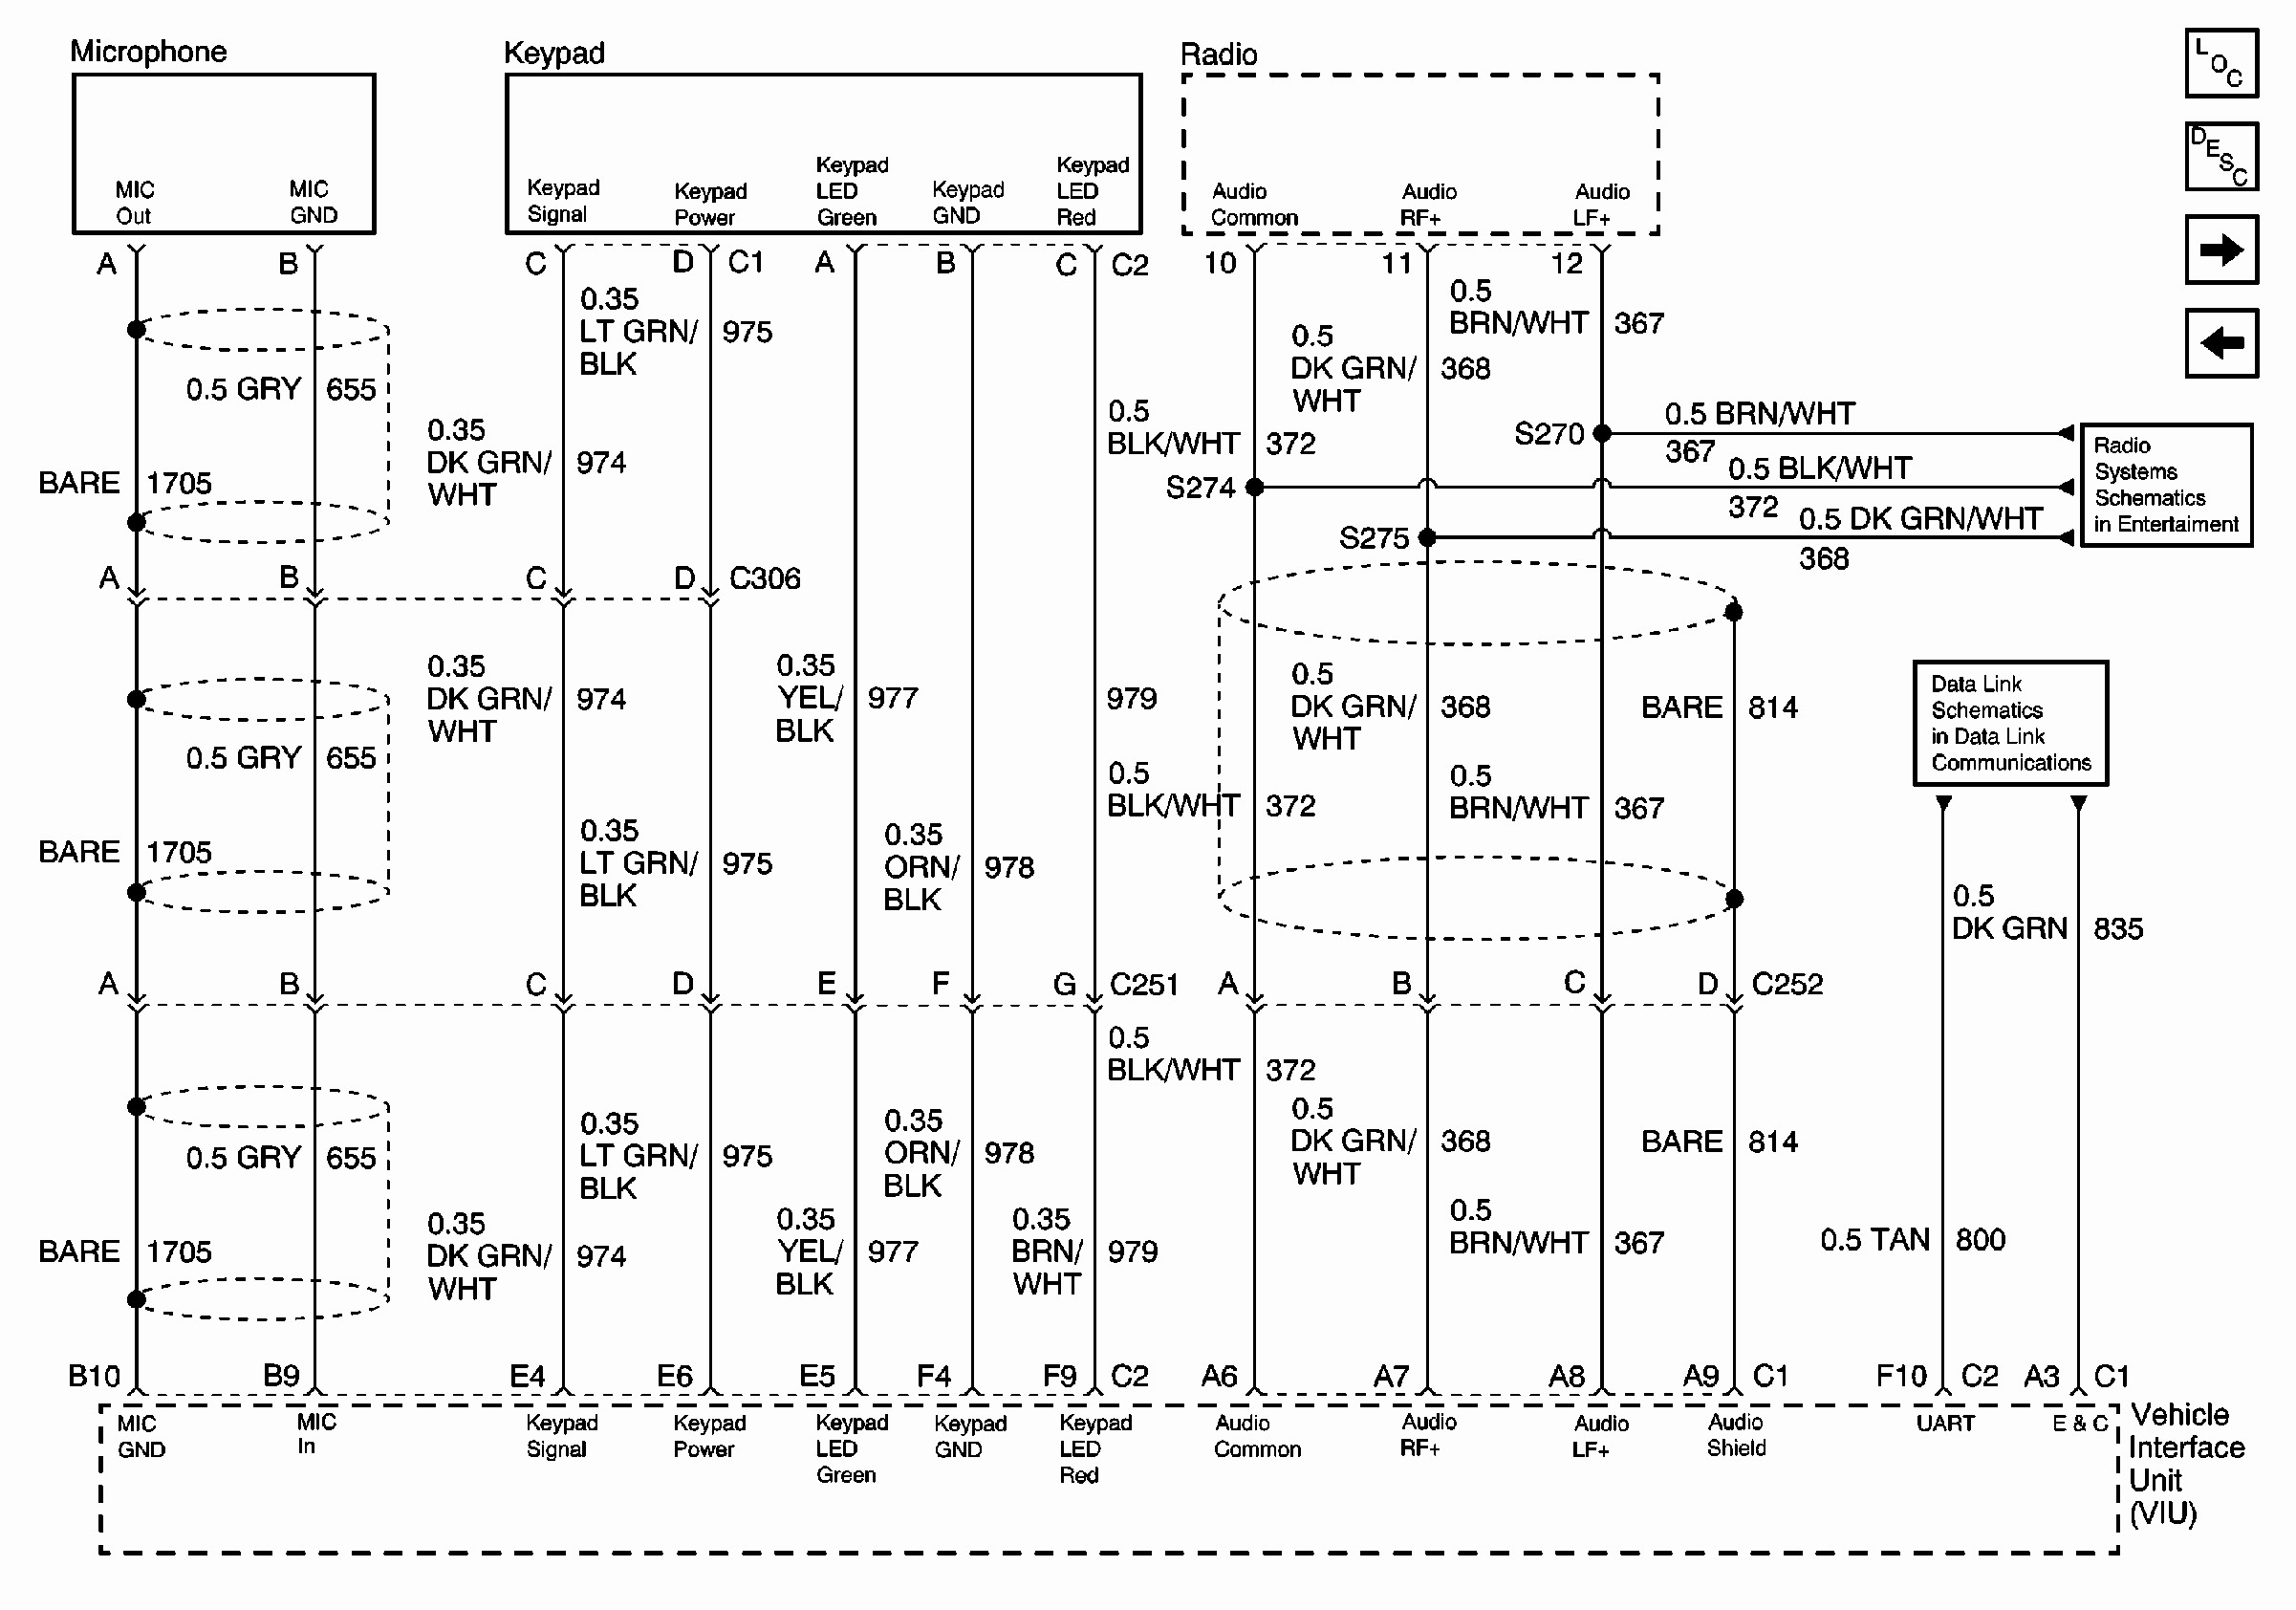 Diagram 2002 Cadillac Escalade Bose Stereo Wiring Diagram Sample Wiring Diagram Full Version Hd Quality Wiring Diagram Databasemelt 9x9sport Fr